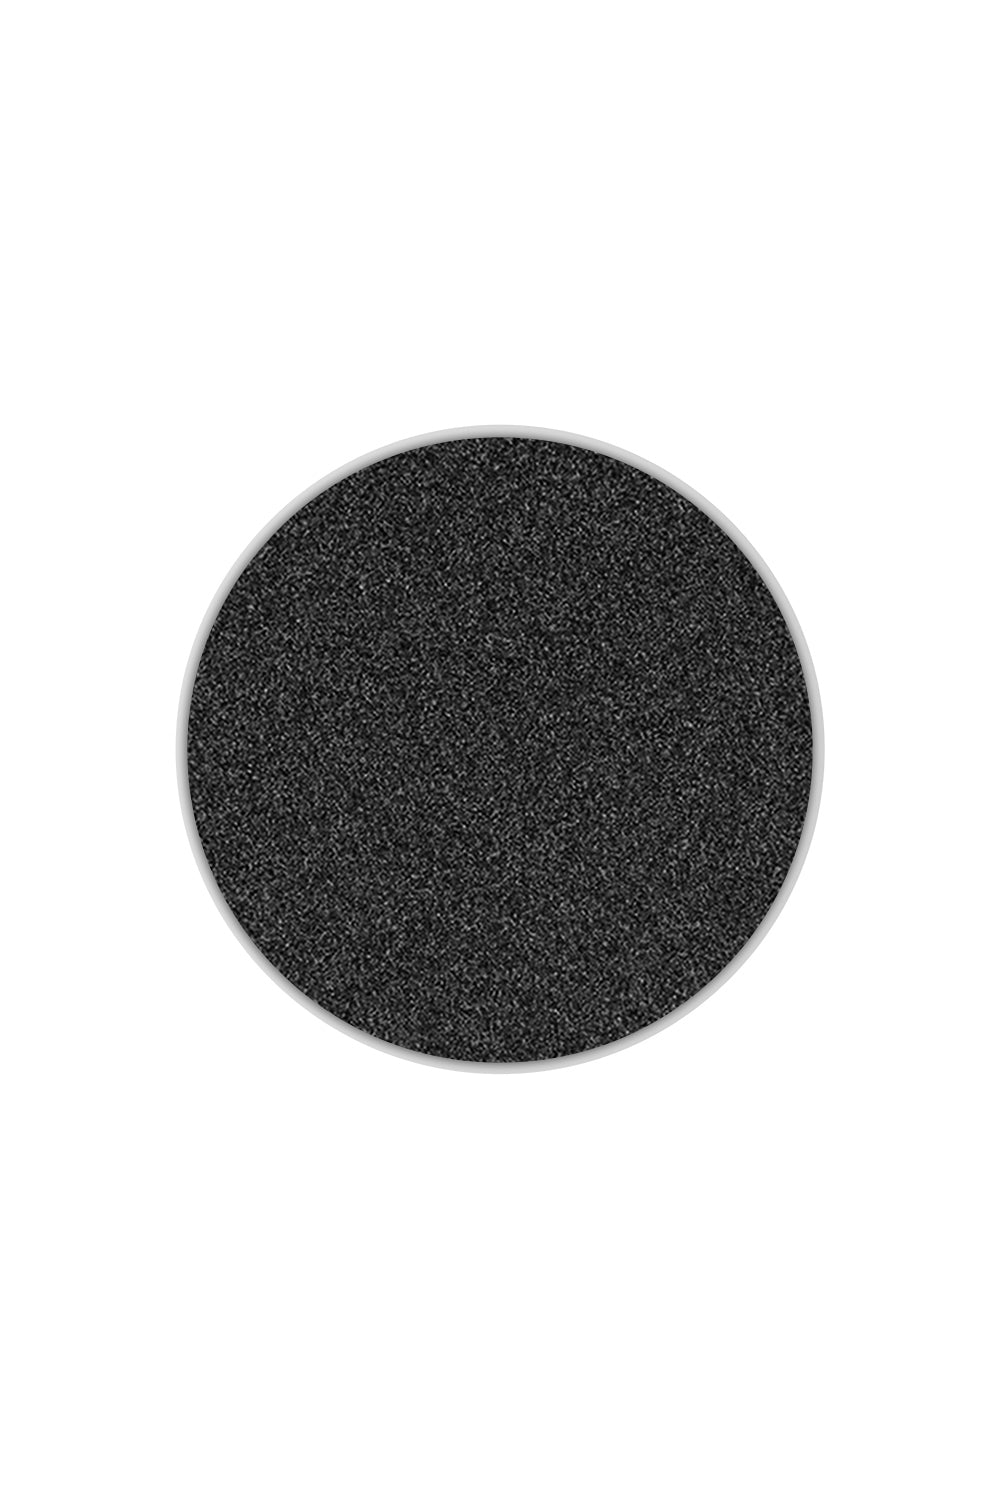 Type 4 Eyeshadow Pan - Black Ice